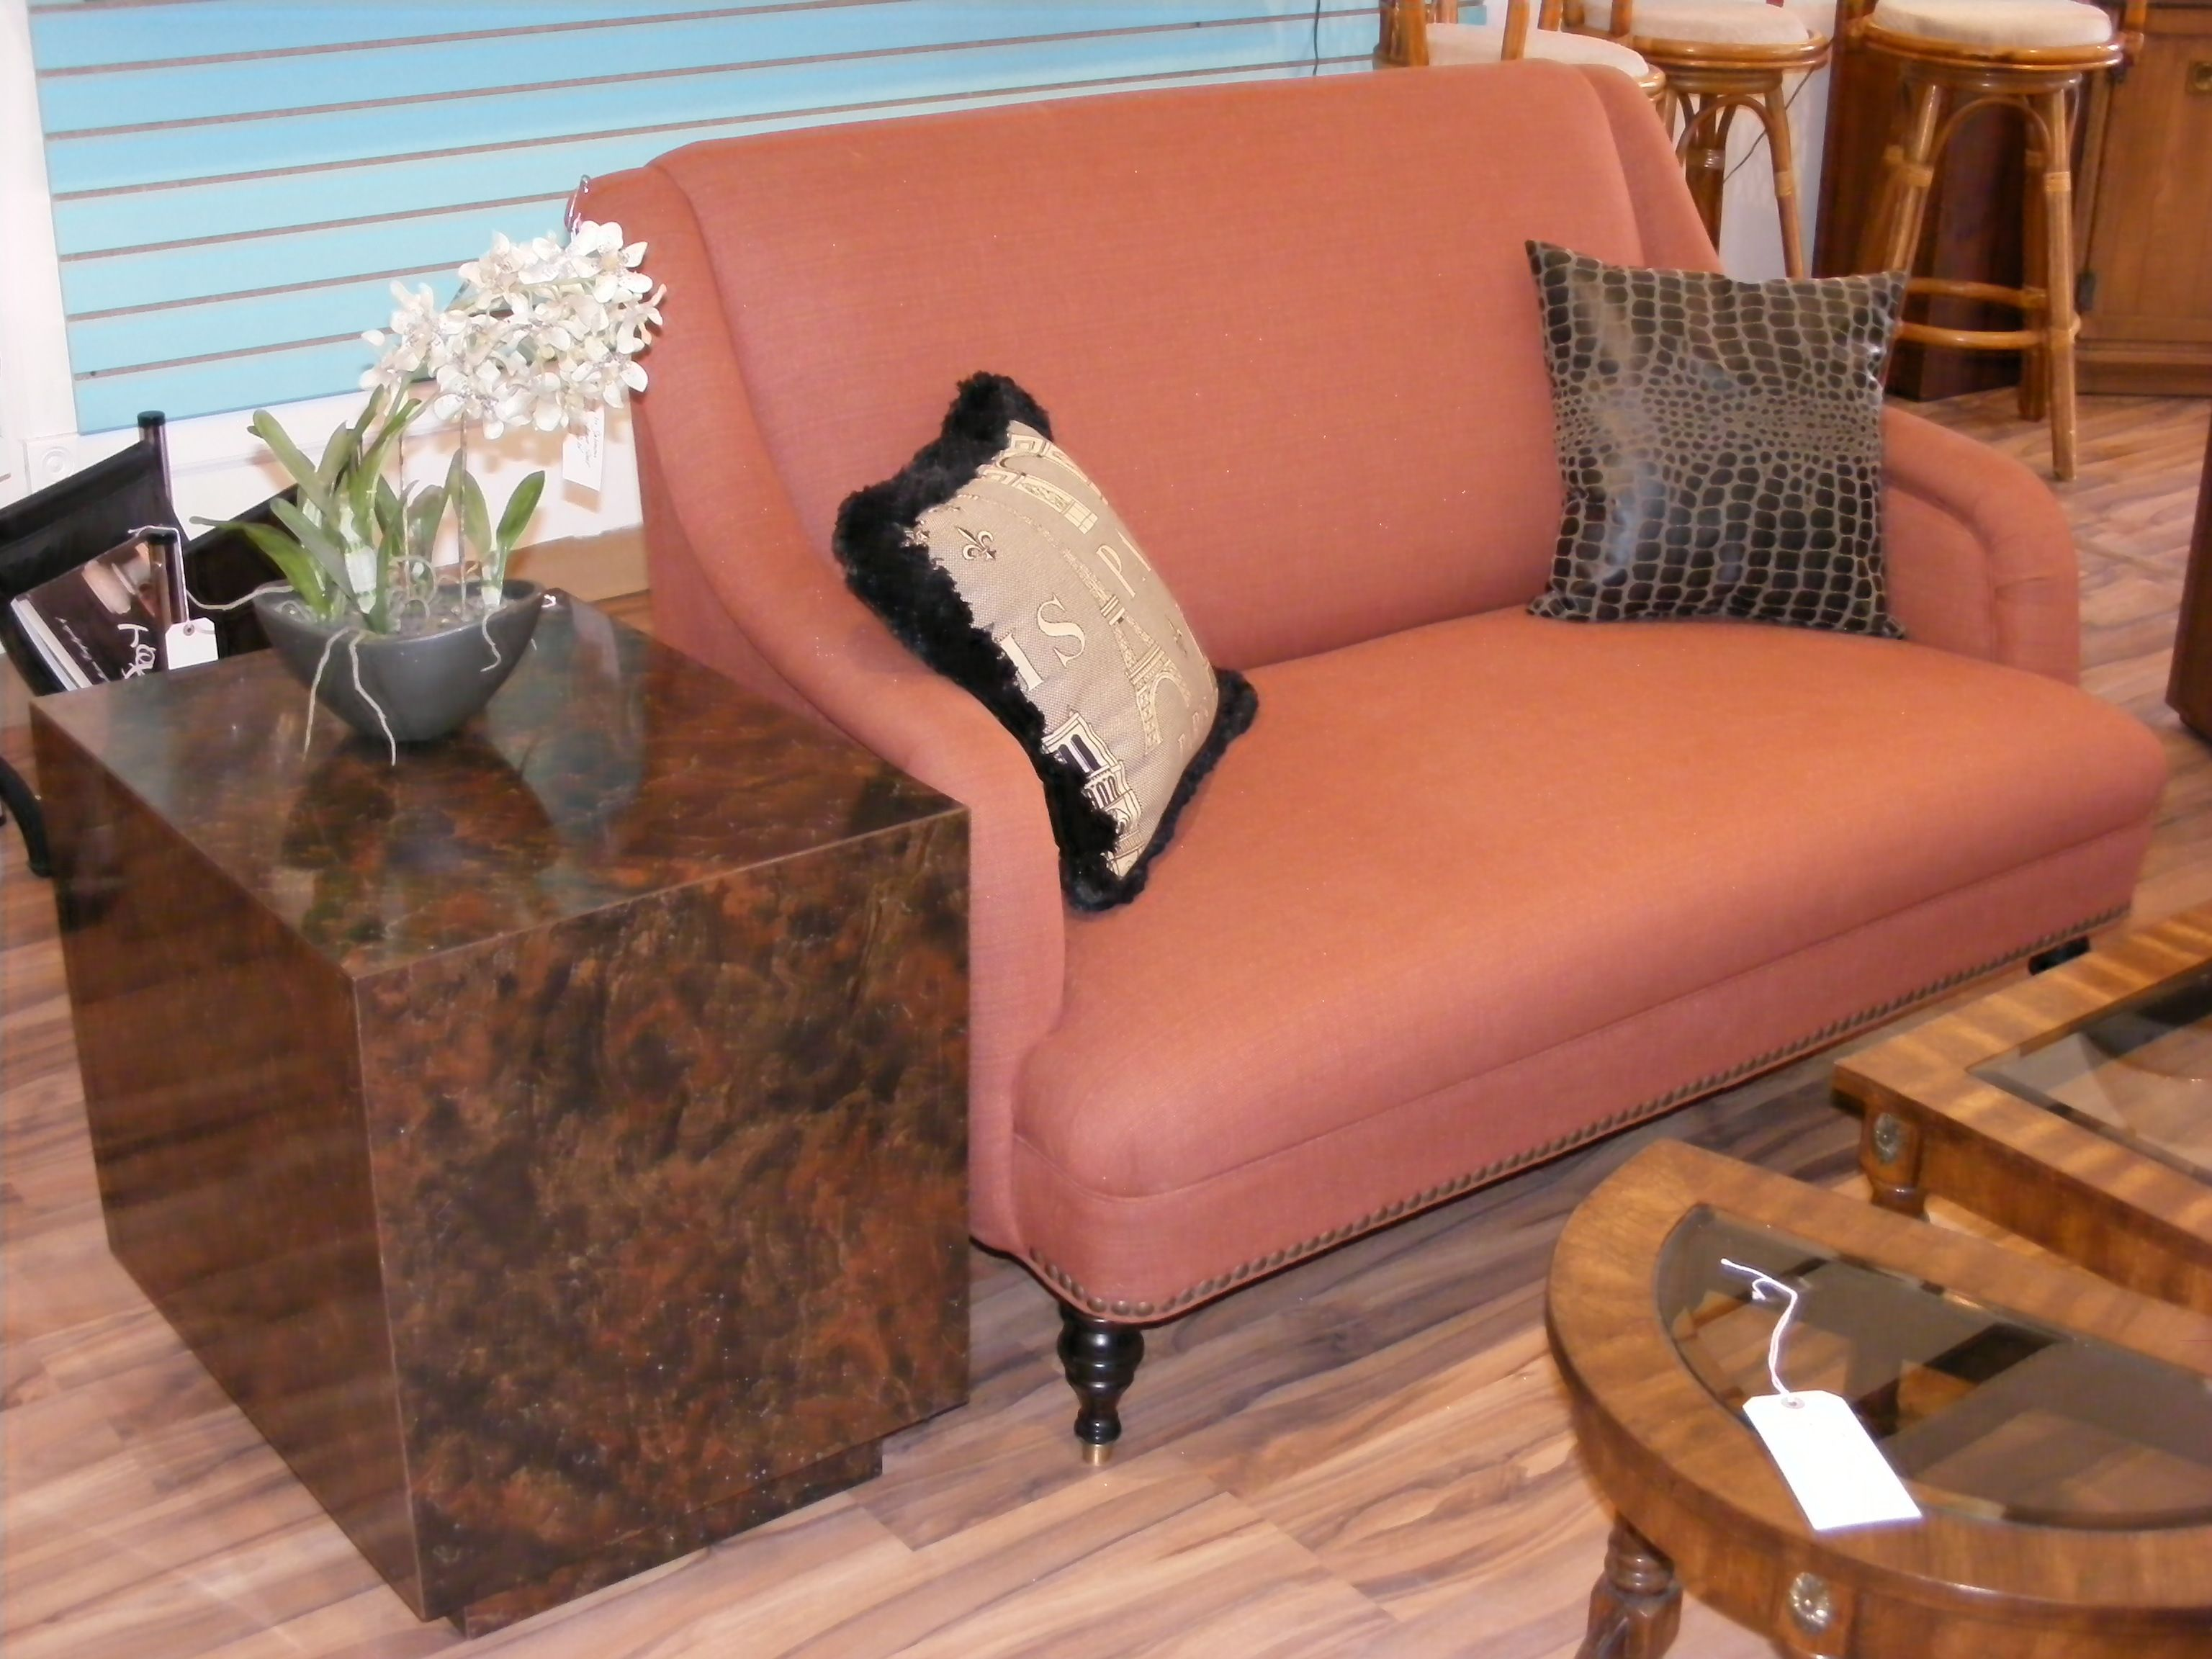 Gentil Vintage Furniture · Sassy In Salmon Sofette~! By Mitchell Gold U2014 At Retro  Kalamazoo.